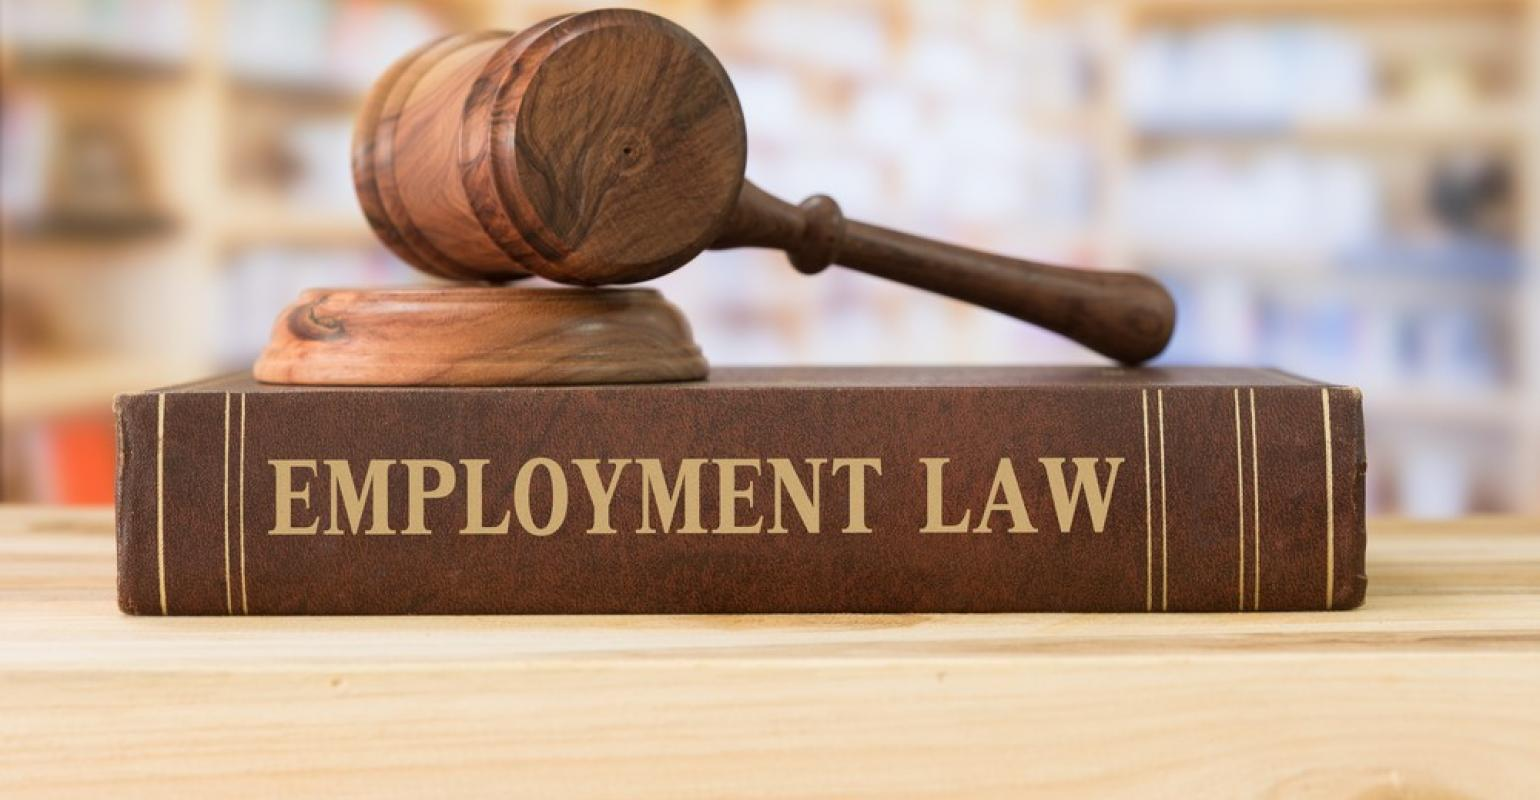 Best Consulting Firm for Legal Funds and Employment